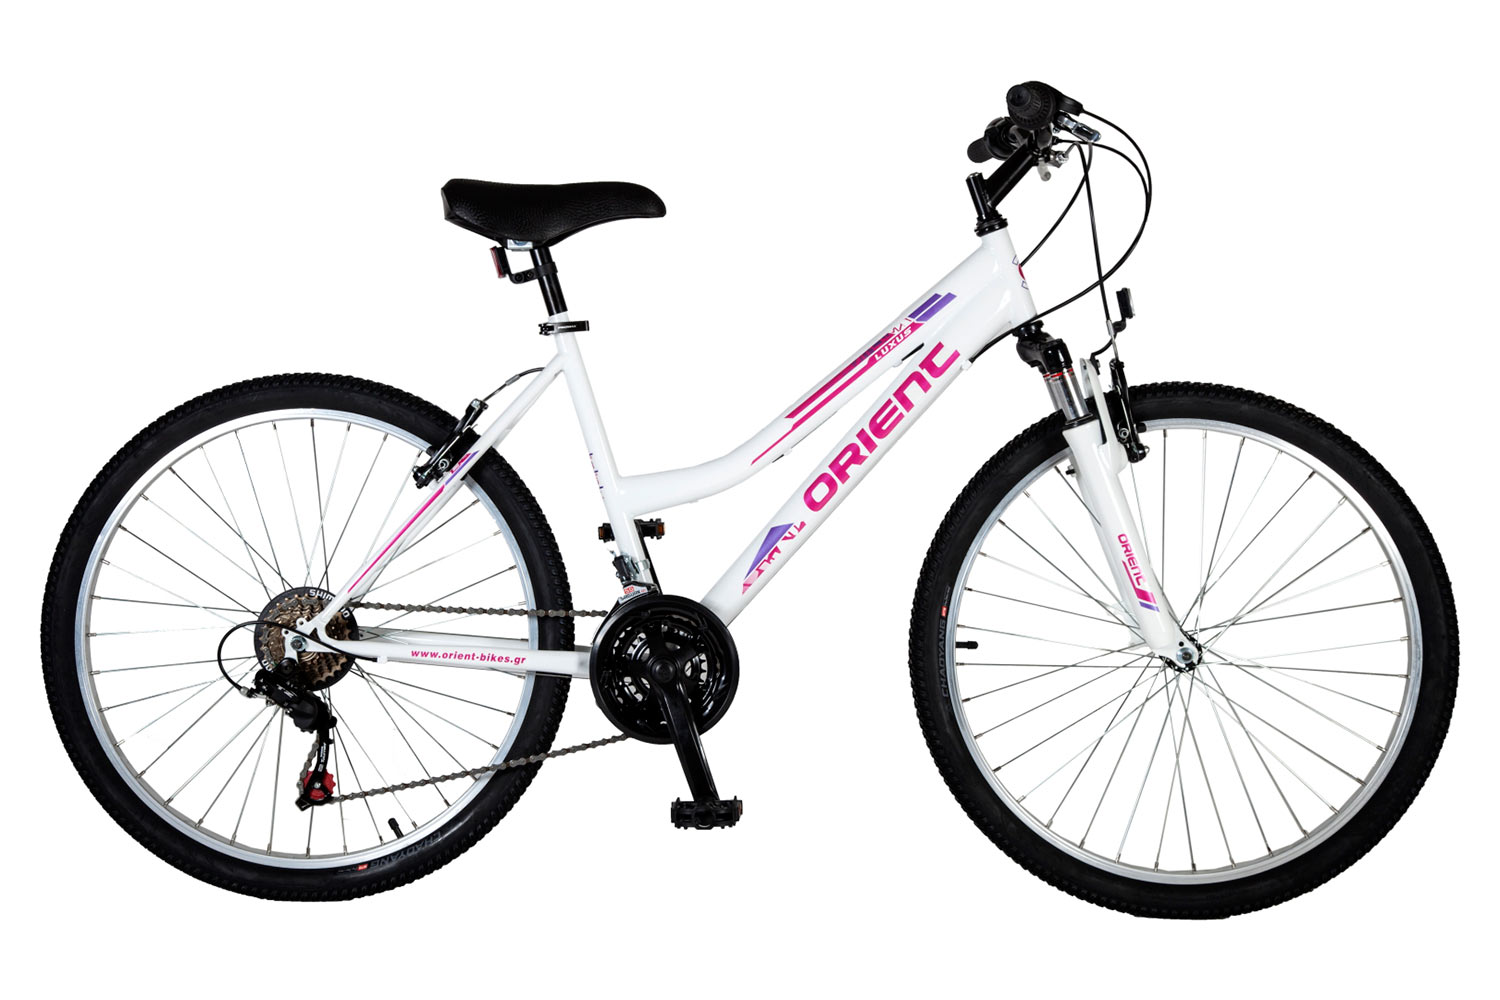 LUXUS 26″ lady 21sp. bike image